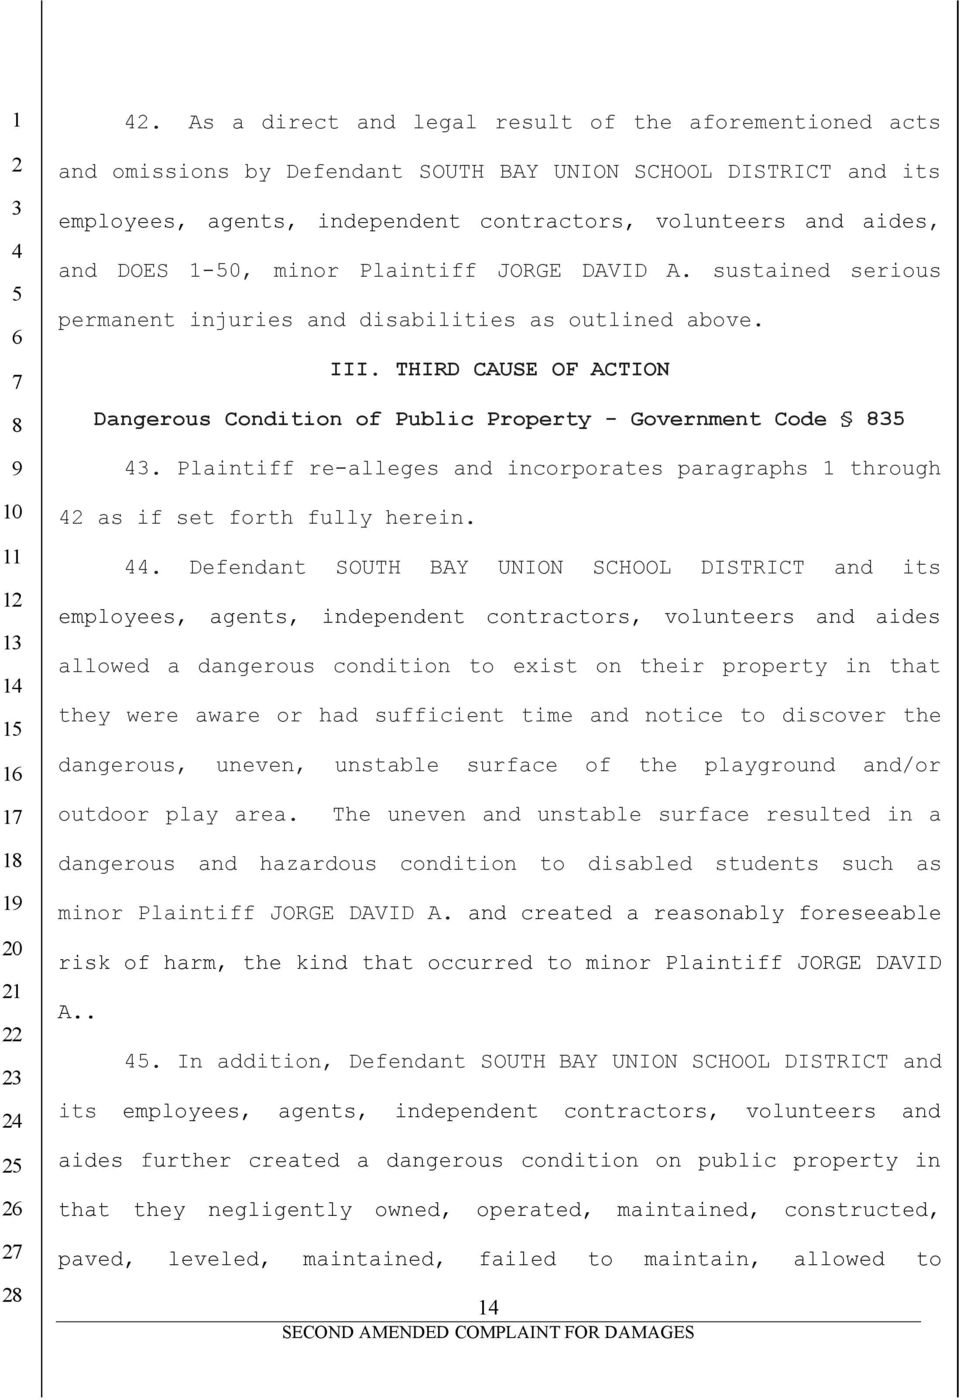 1-0, minor Plaintiff JORGE DAVID A. sustained serious permanent injuries and disabilities as outlined above. III. THIRD CAUSE OF ACTION Dangerous Condition of Public Property - Government Code.